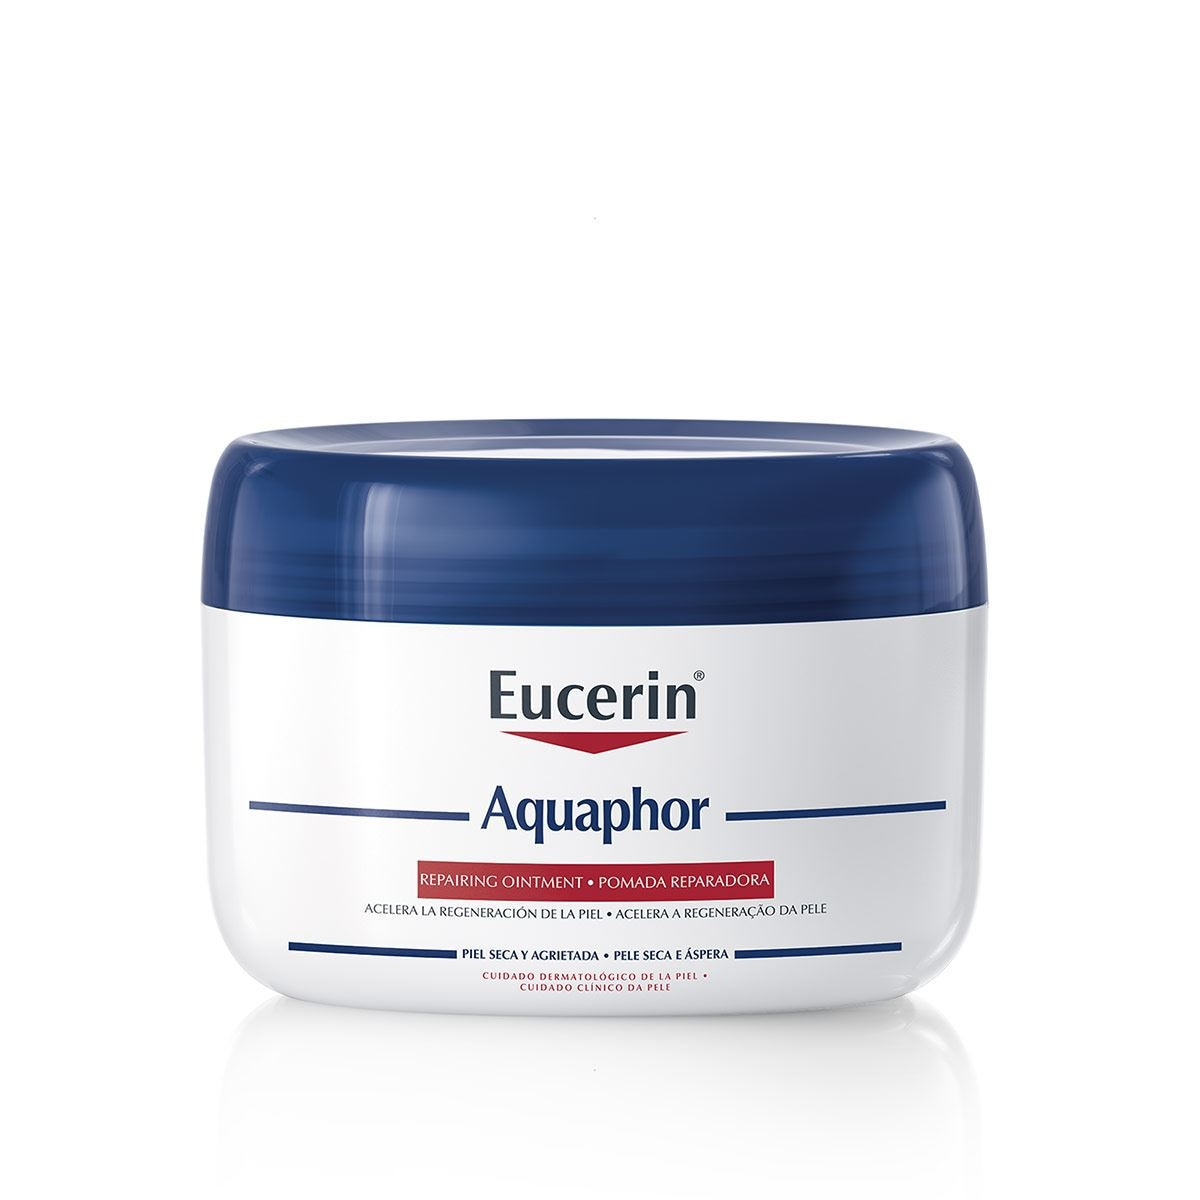 Eucerin Aquaphor Tarro, 100ml